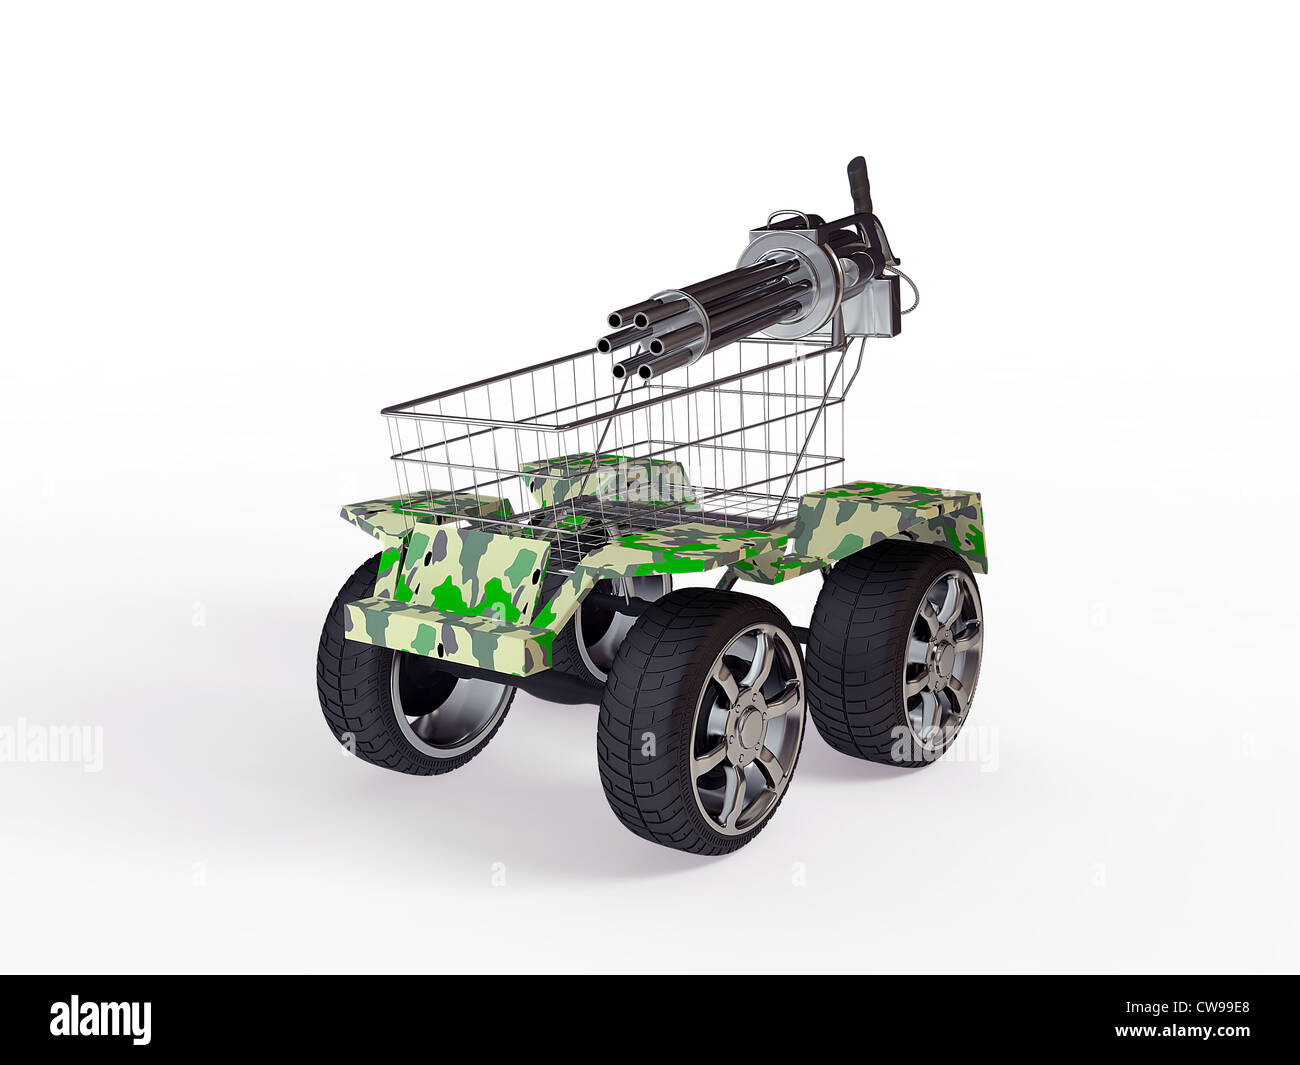 Shopping basket with big wheels on a white background - Stock Image